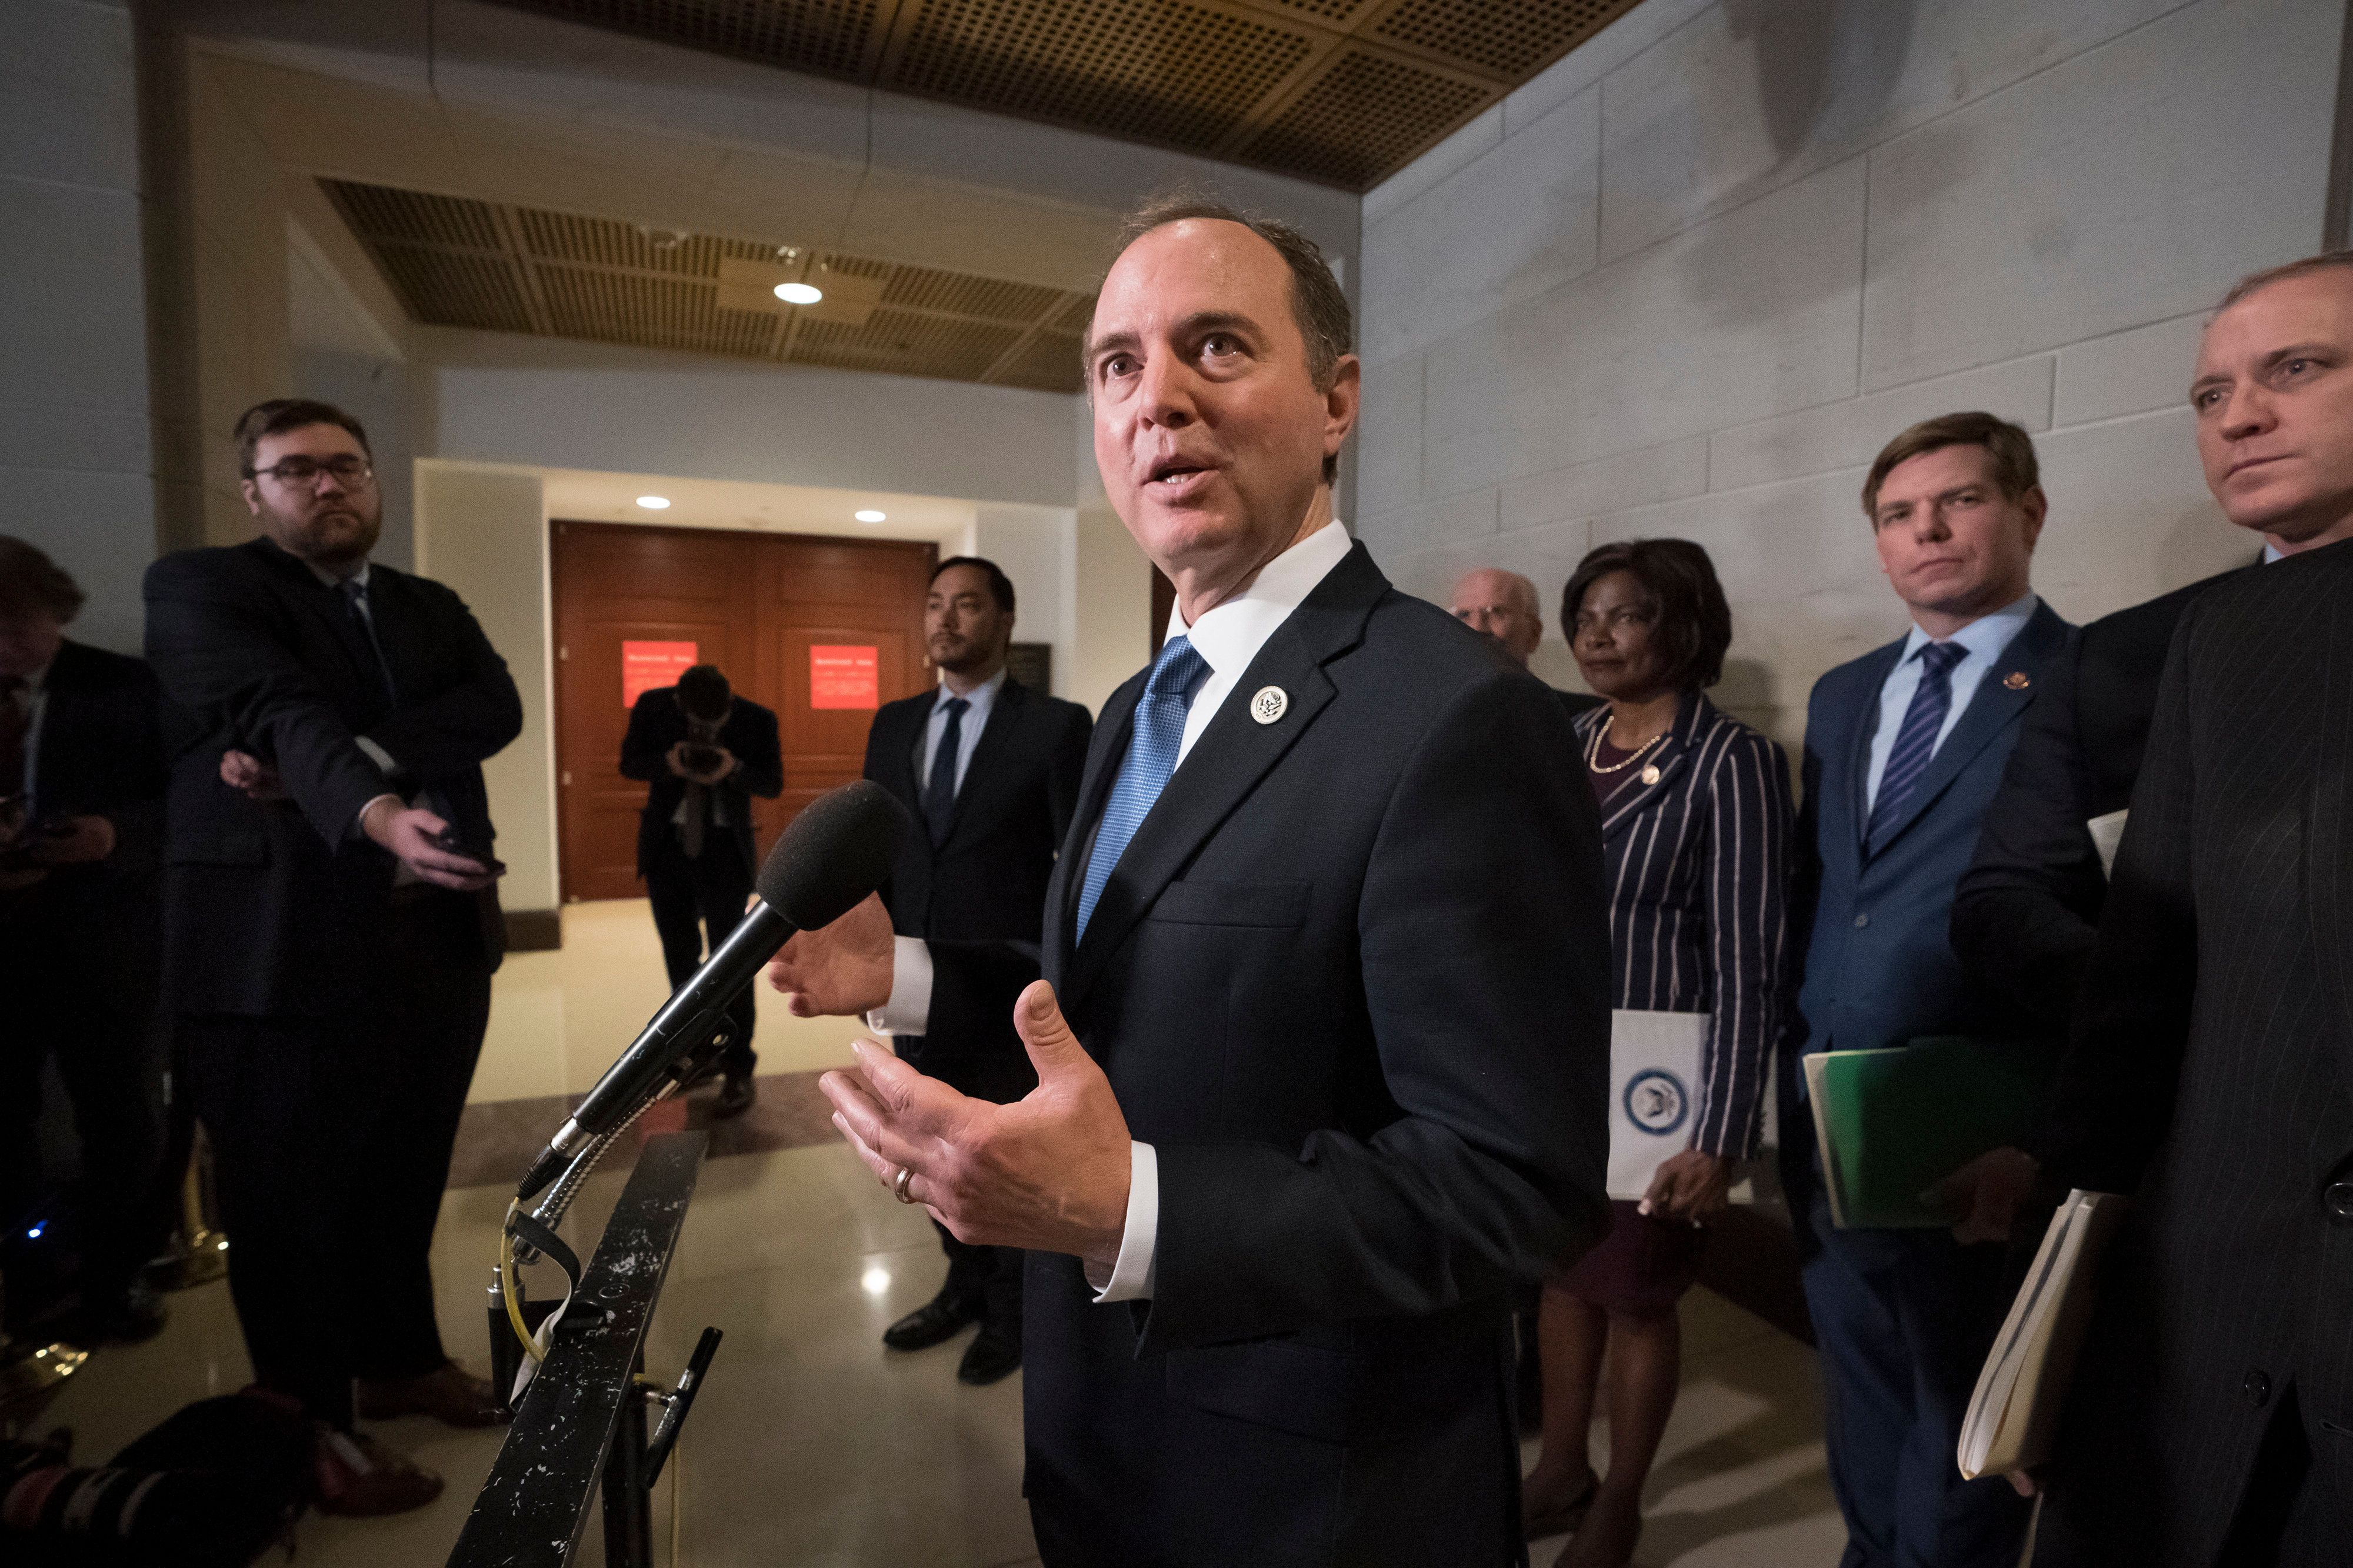 Rep. Adam Schiff, chairman of the House Intelligence Committee, talks to reporters after a day of interviewing Michael Cohen, President Donald Trump's former lawyer, on Capitol Hill in Washington, Thursday, Feb. 28, 2019. (AP Photo/J. Scott Applewhite)